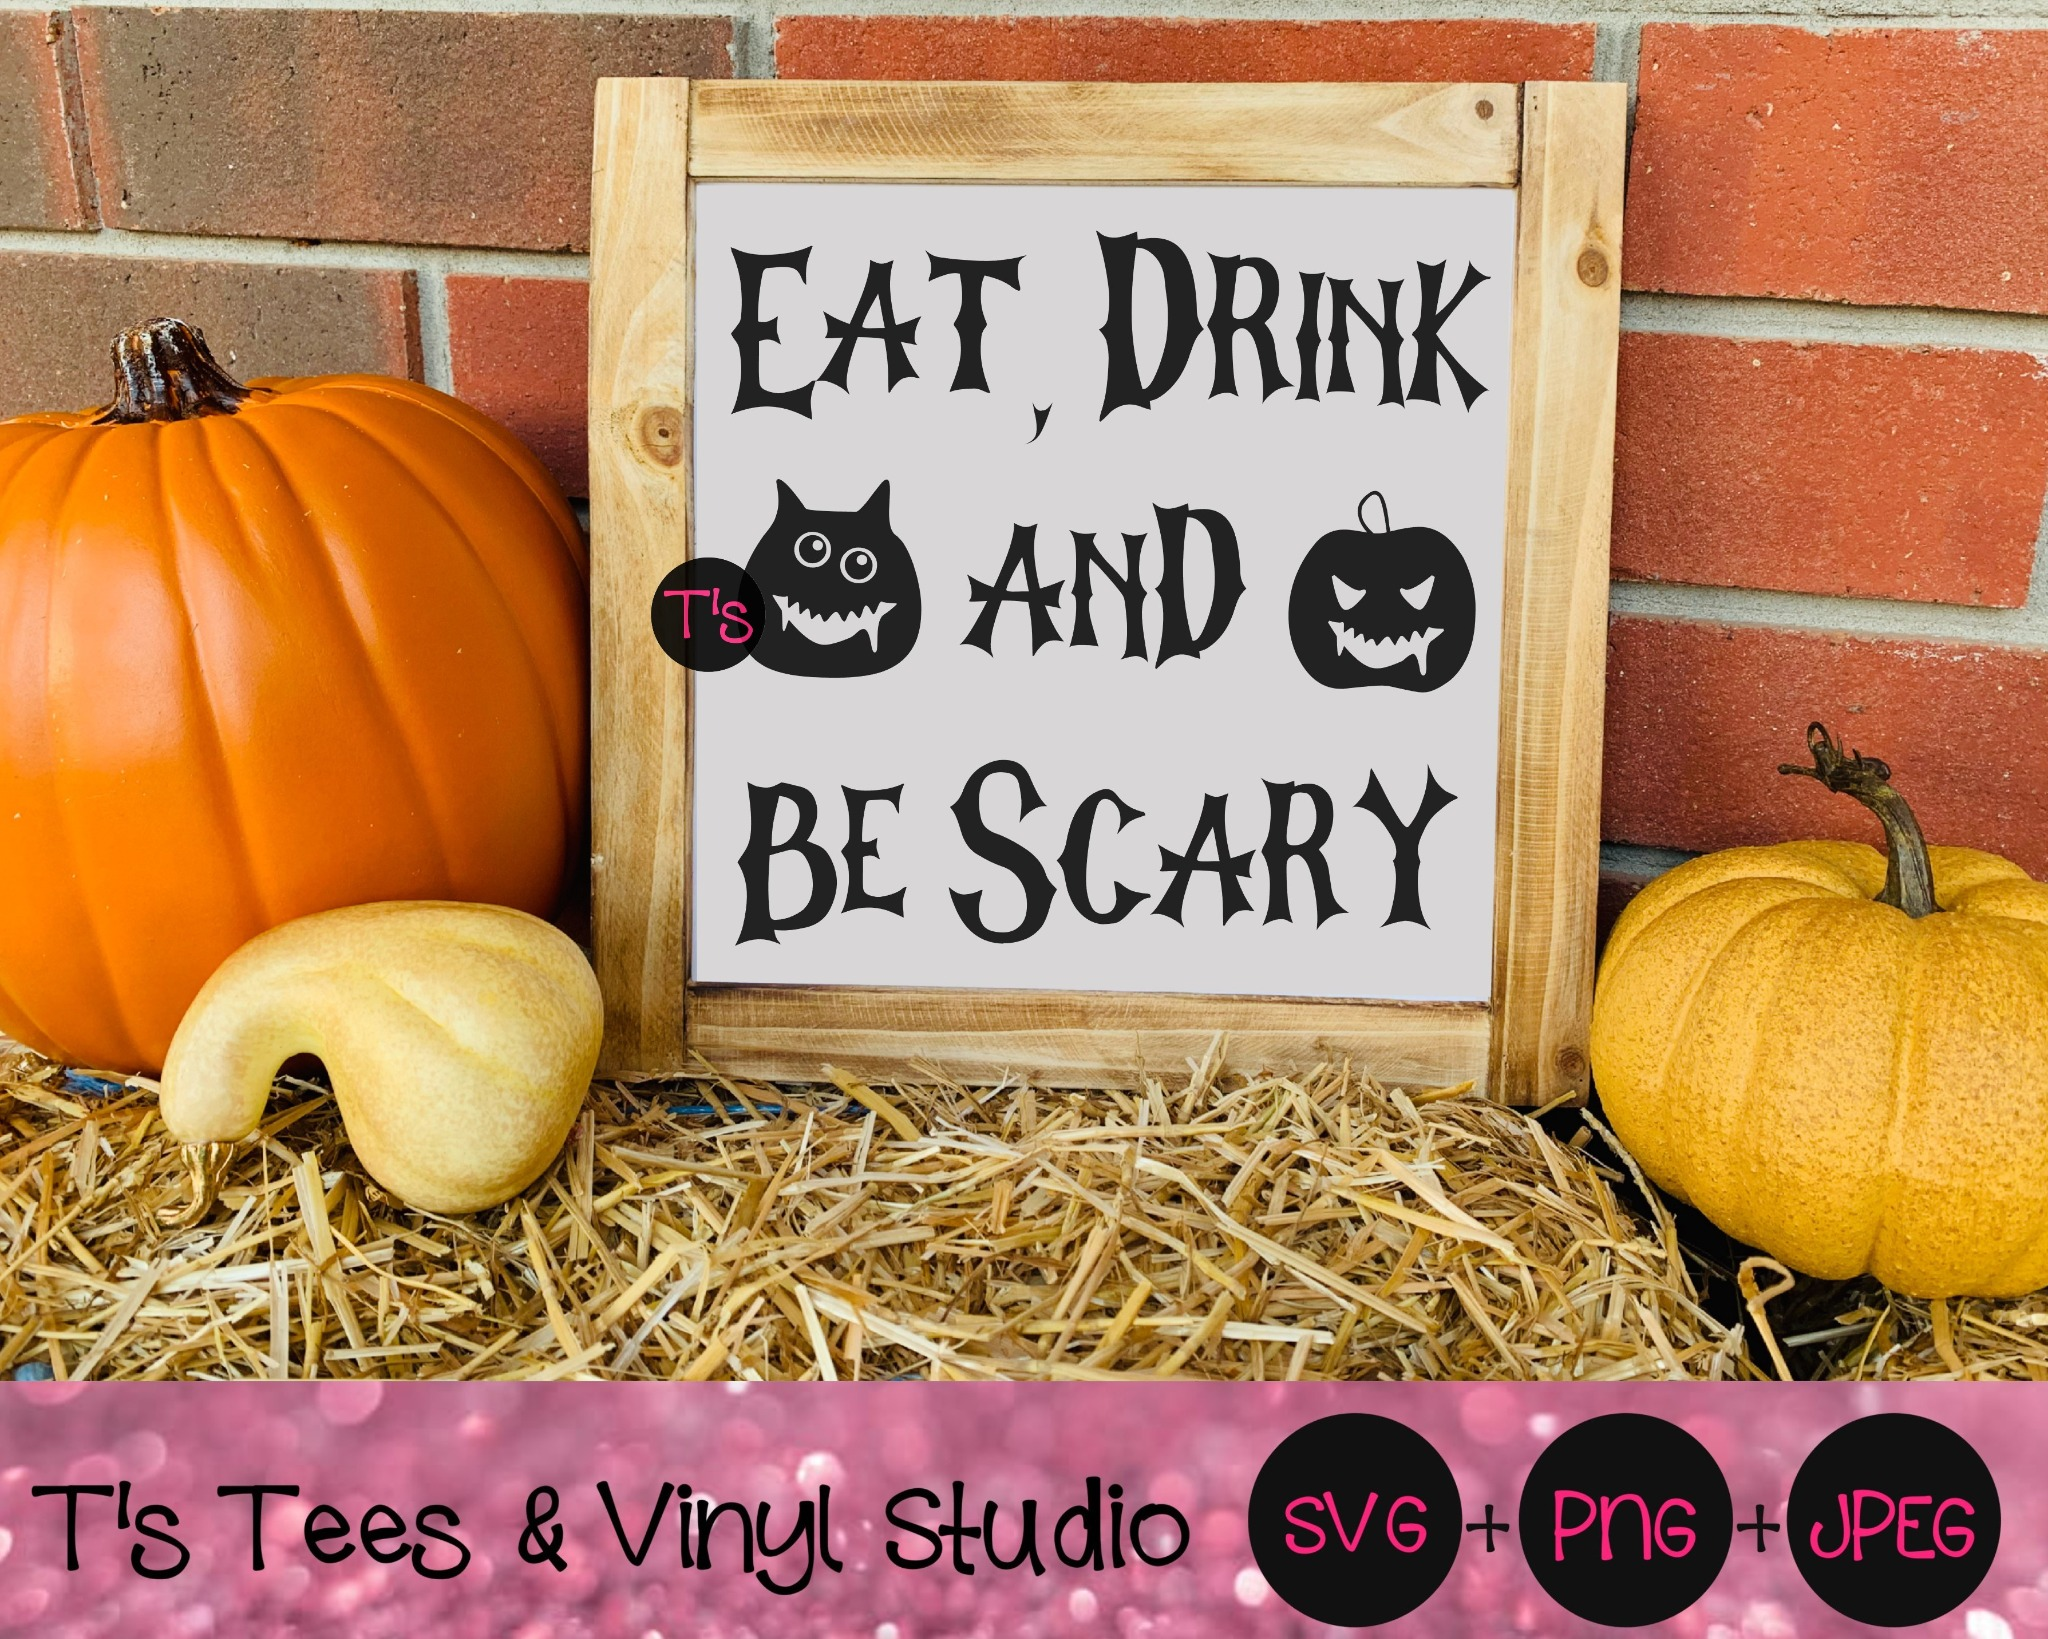 Halloween Svg, Scary Svg, Eat Drink And Be Scary Svg, Eat Svg, Drink Svg, Be Scary Svg, Fall Svg